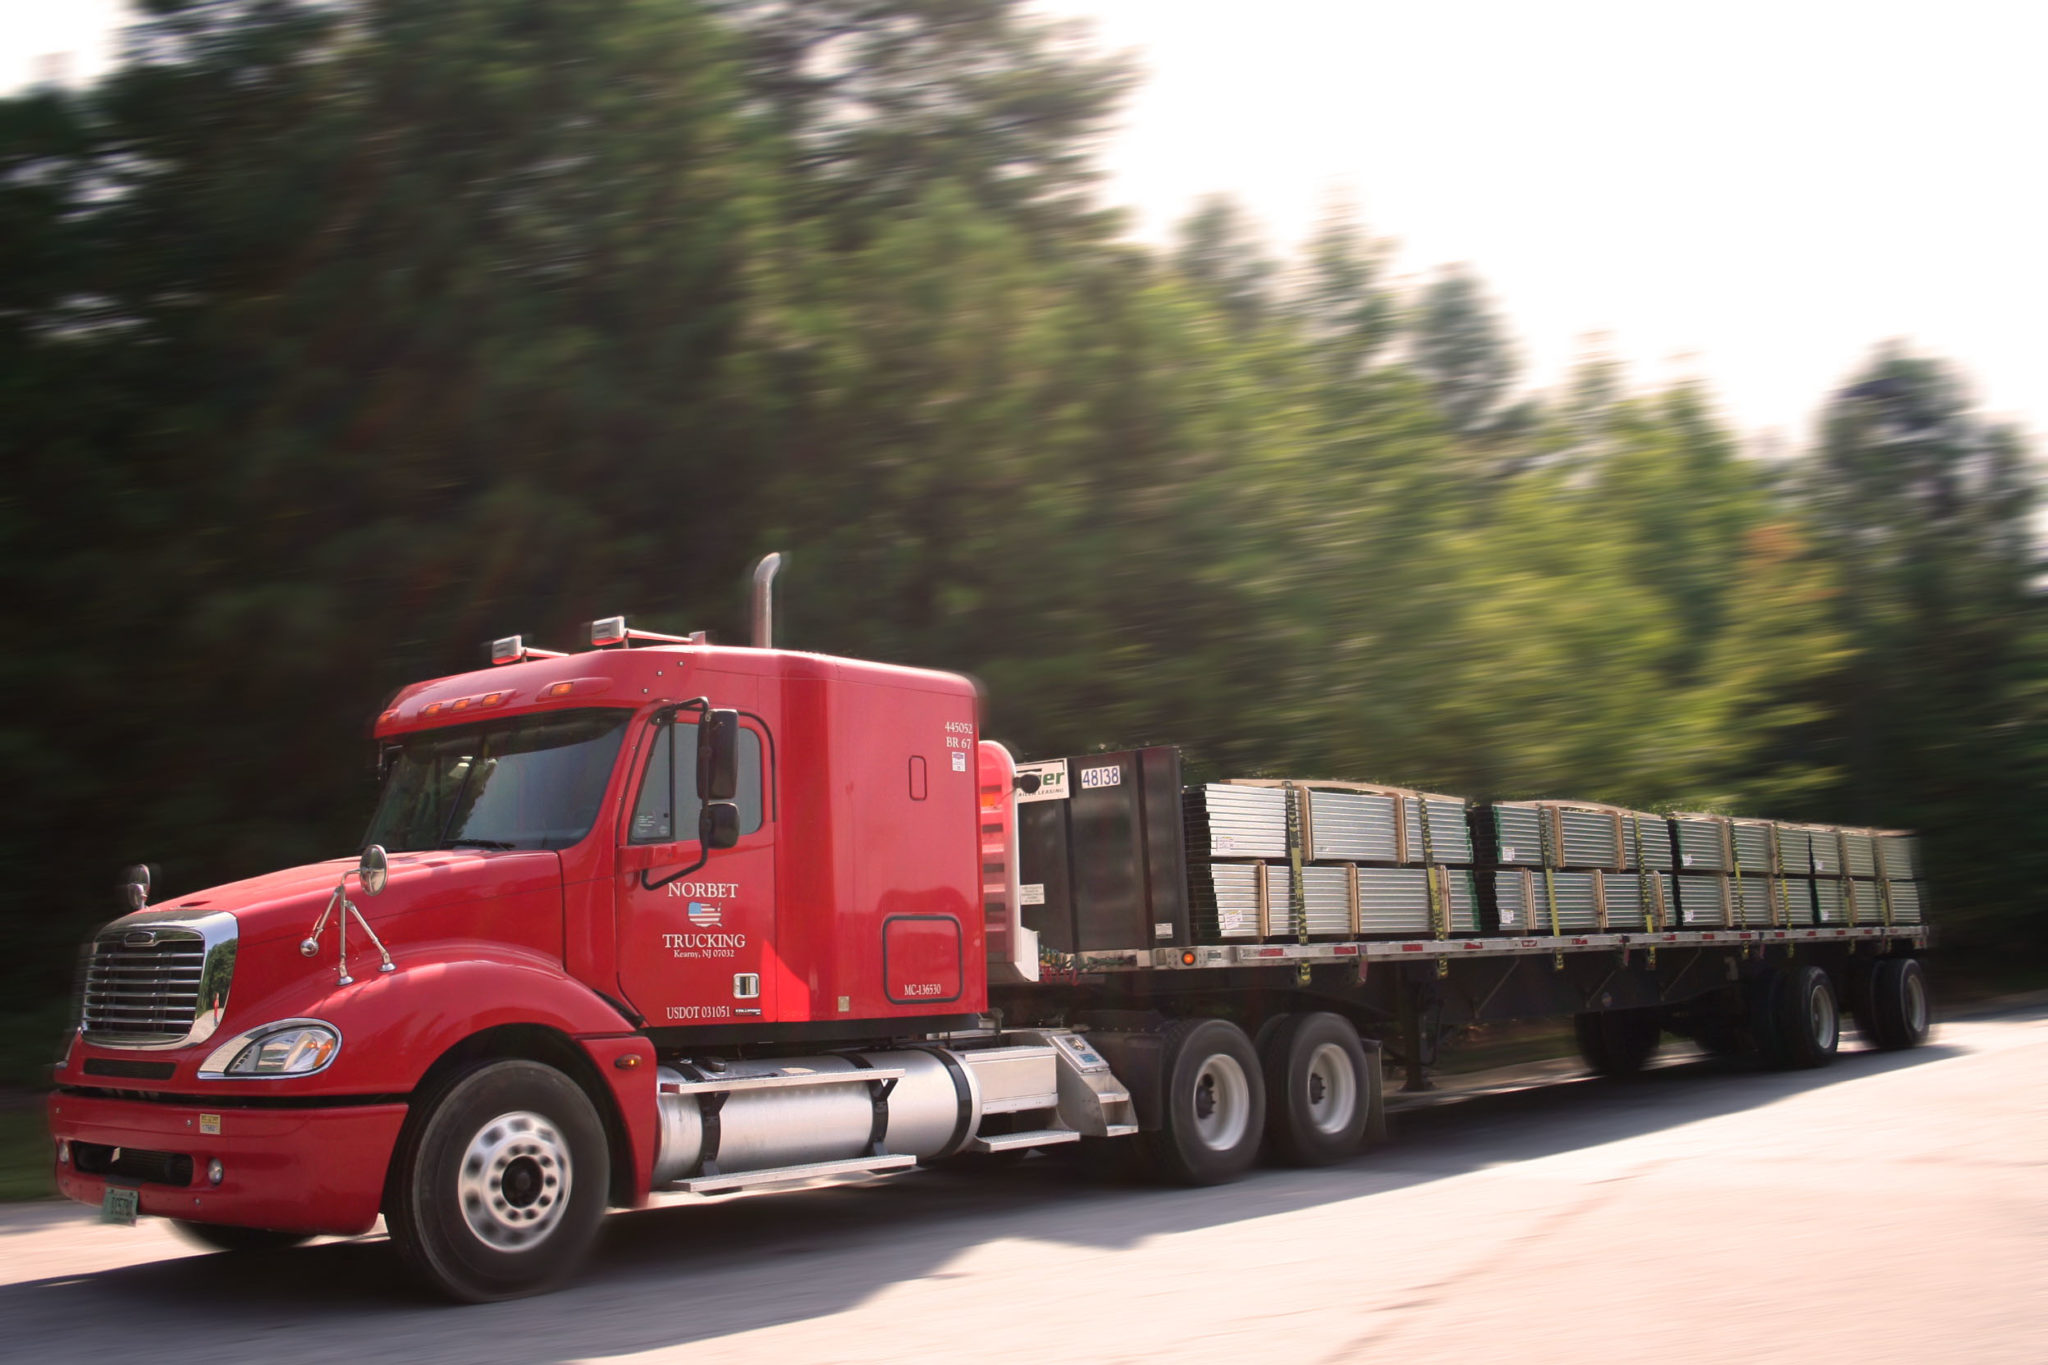 Norbet Truck delivery image